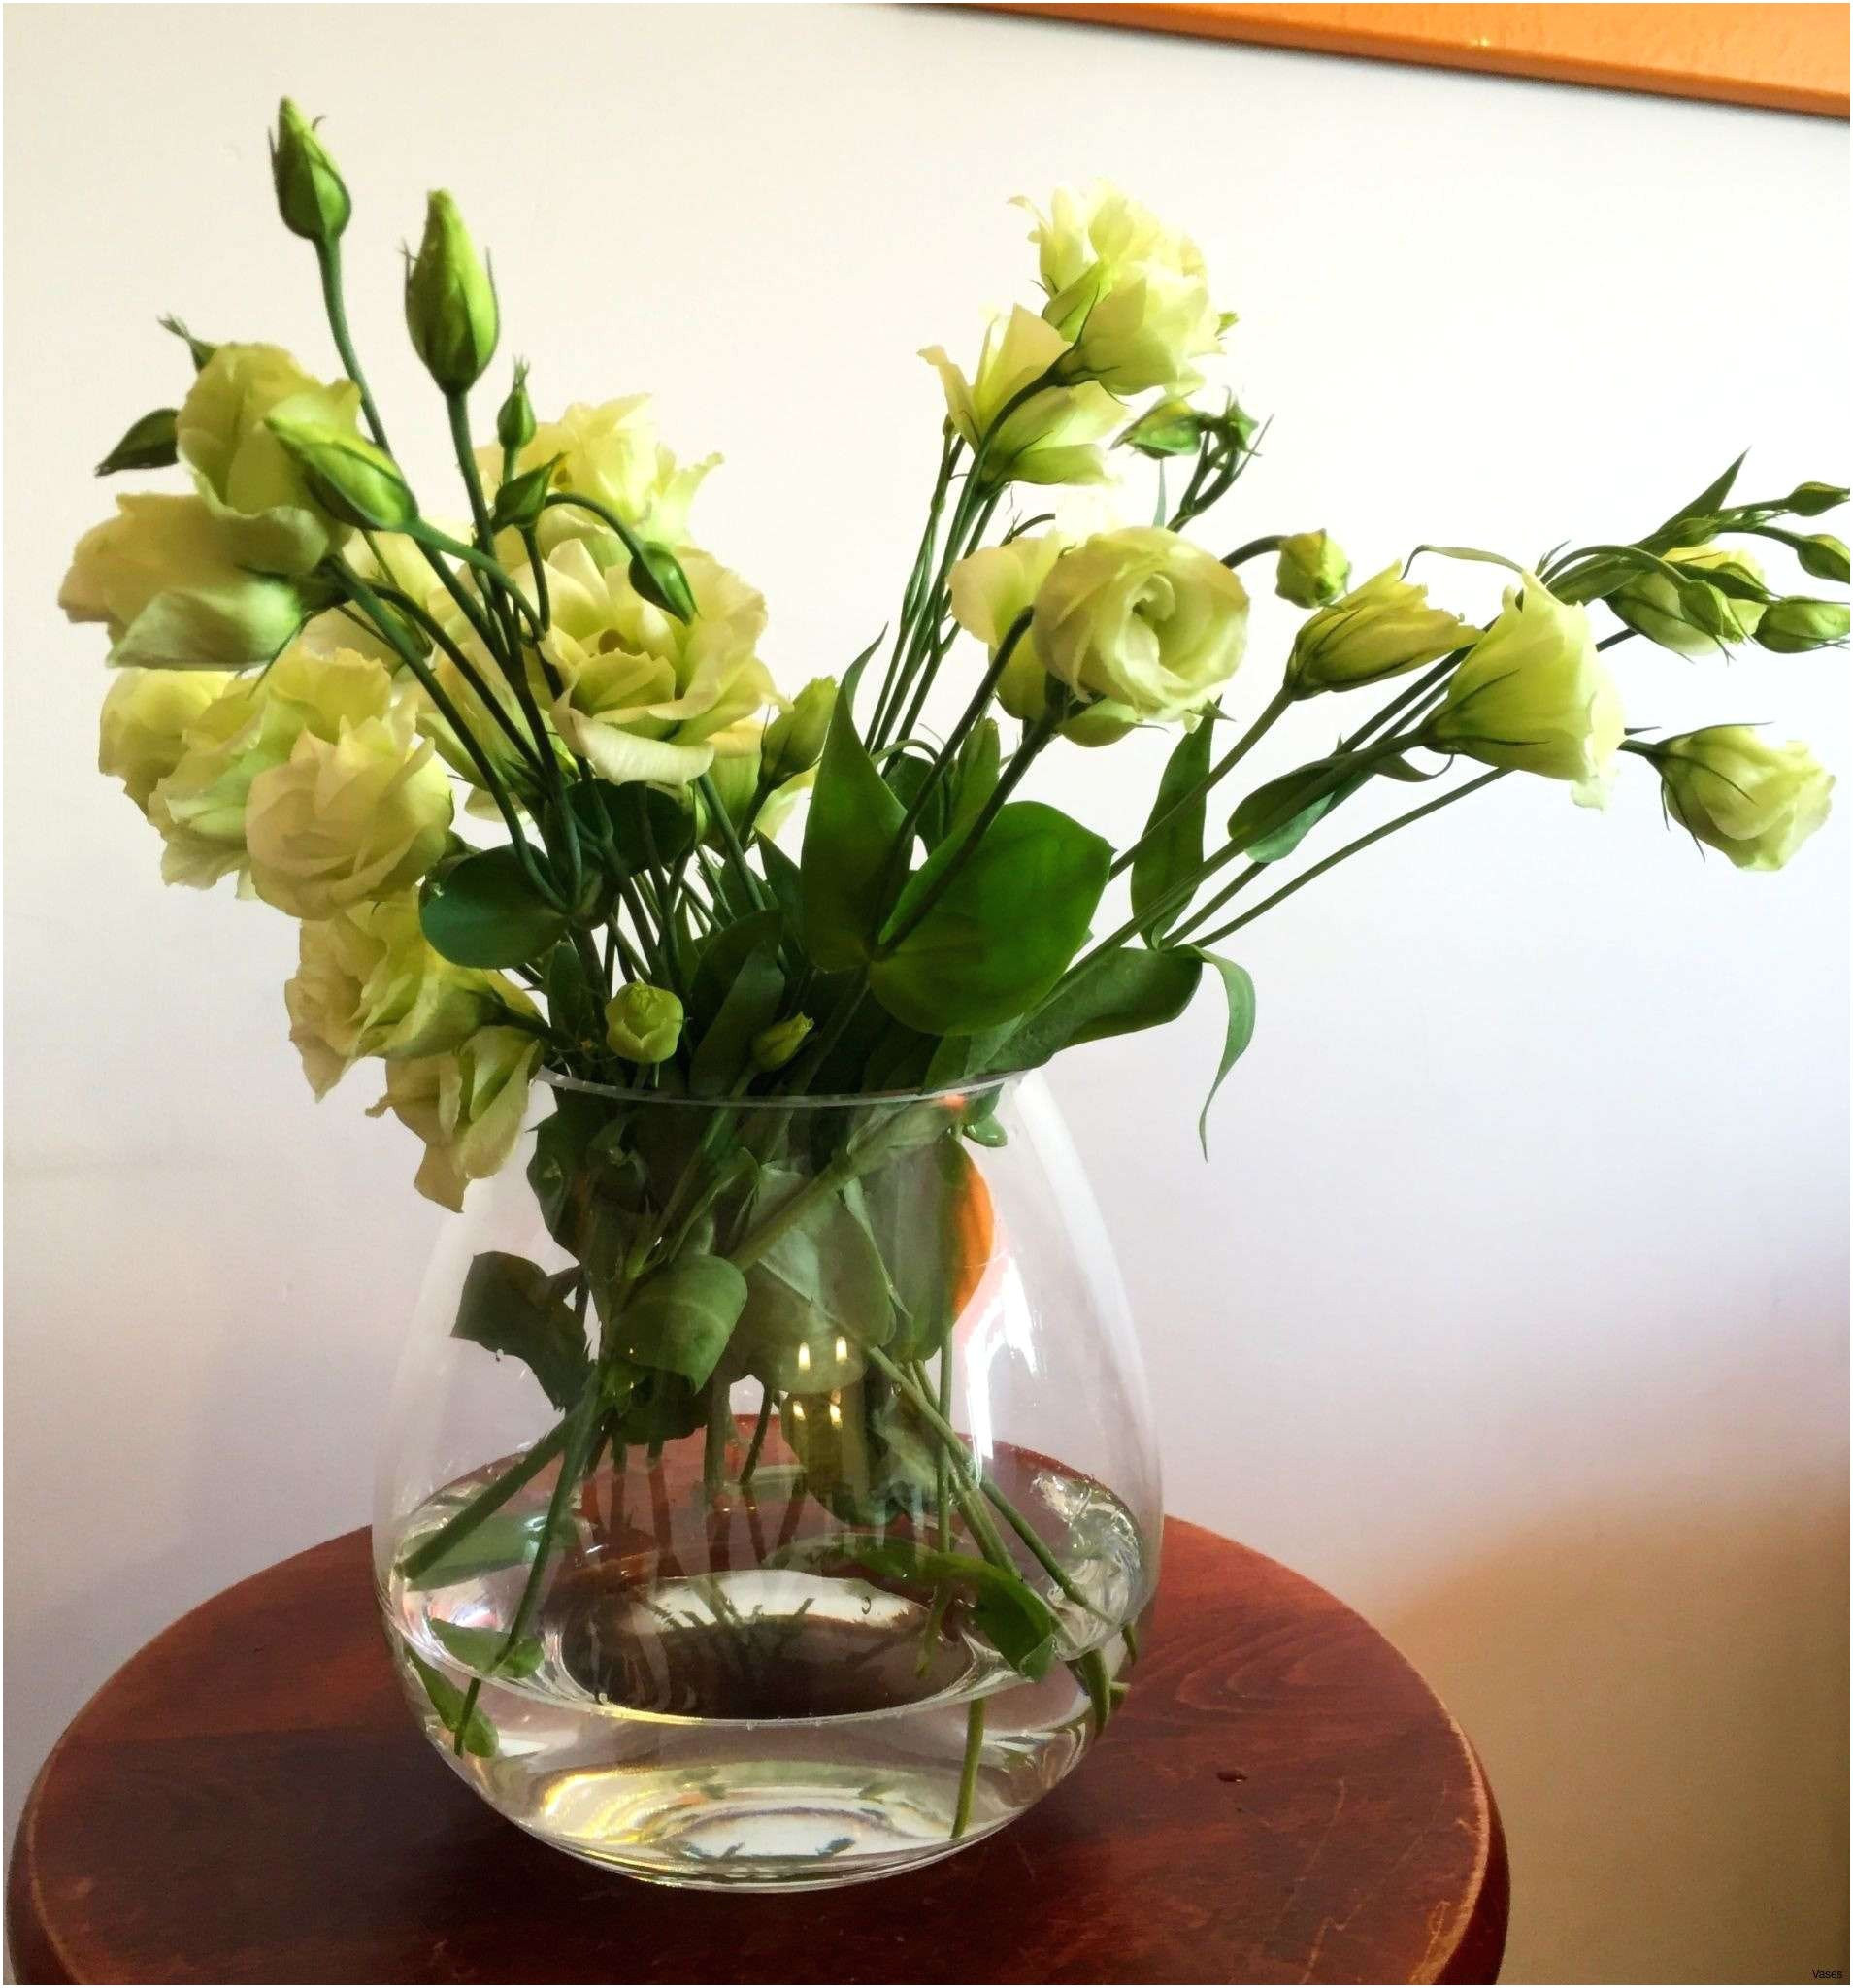 vases table centerpieces of tall green vase photos tiger height awful flower vase table 04h within tall green vase photos tiger height awful flower vase table 04h vases tablei 0d clipart